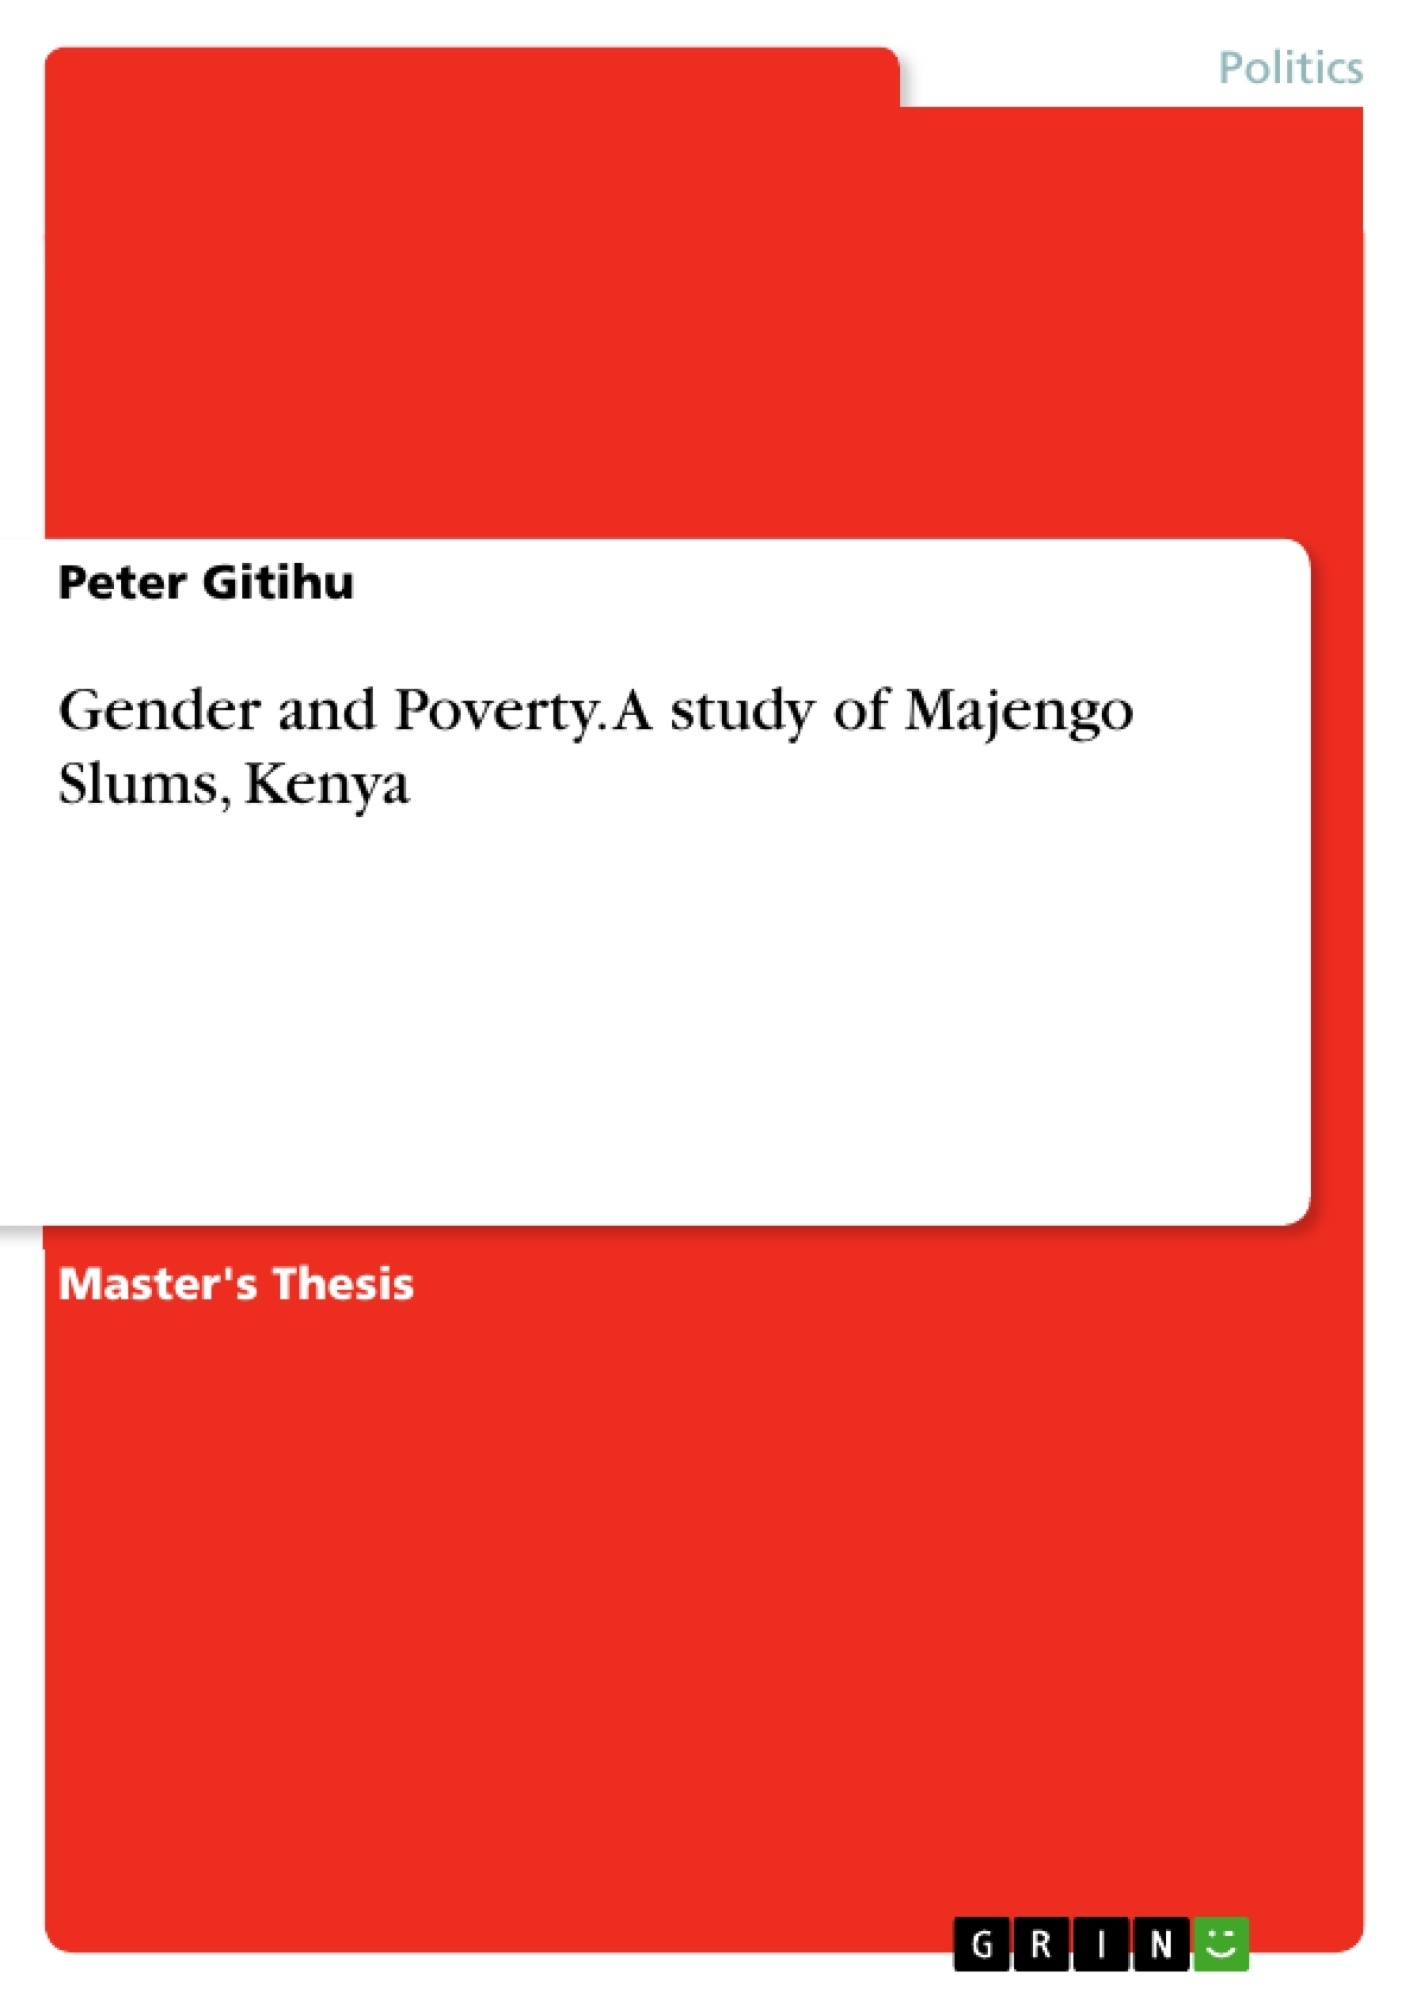 Title: Gender and Poverty. A study of Majengo Slums, Kenya